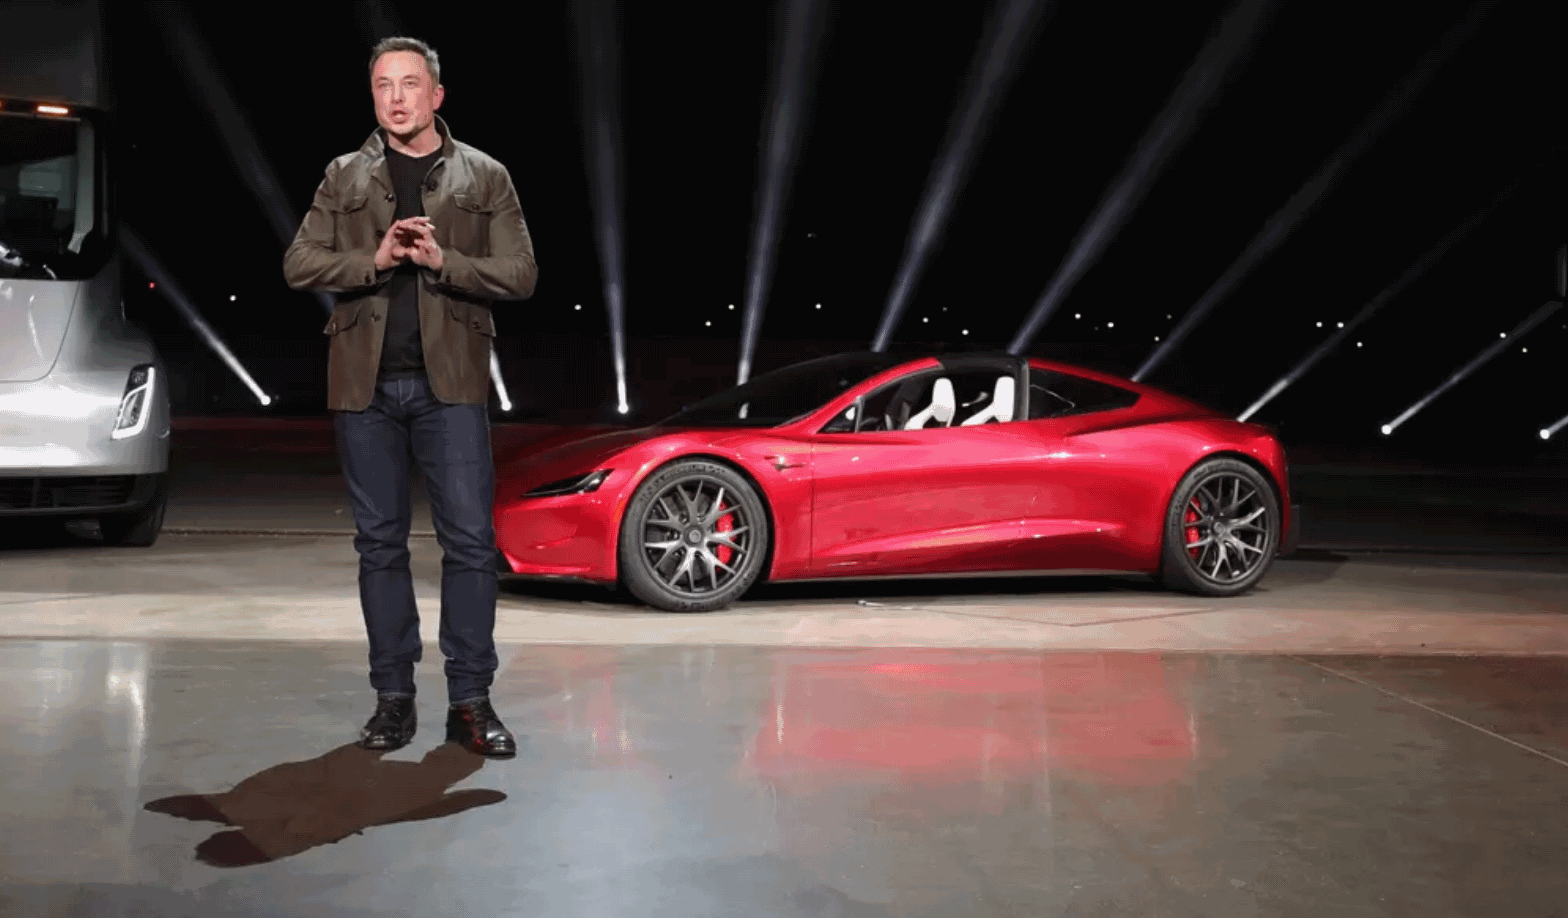 Tesla is 'Very Close' to Developing Fully Autonomous Vehicles